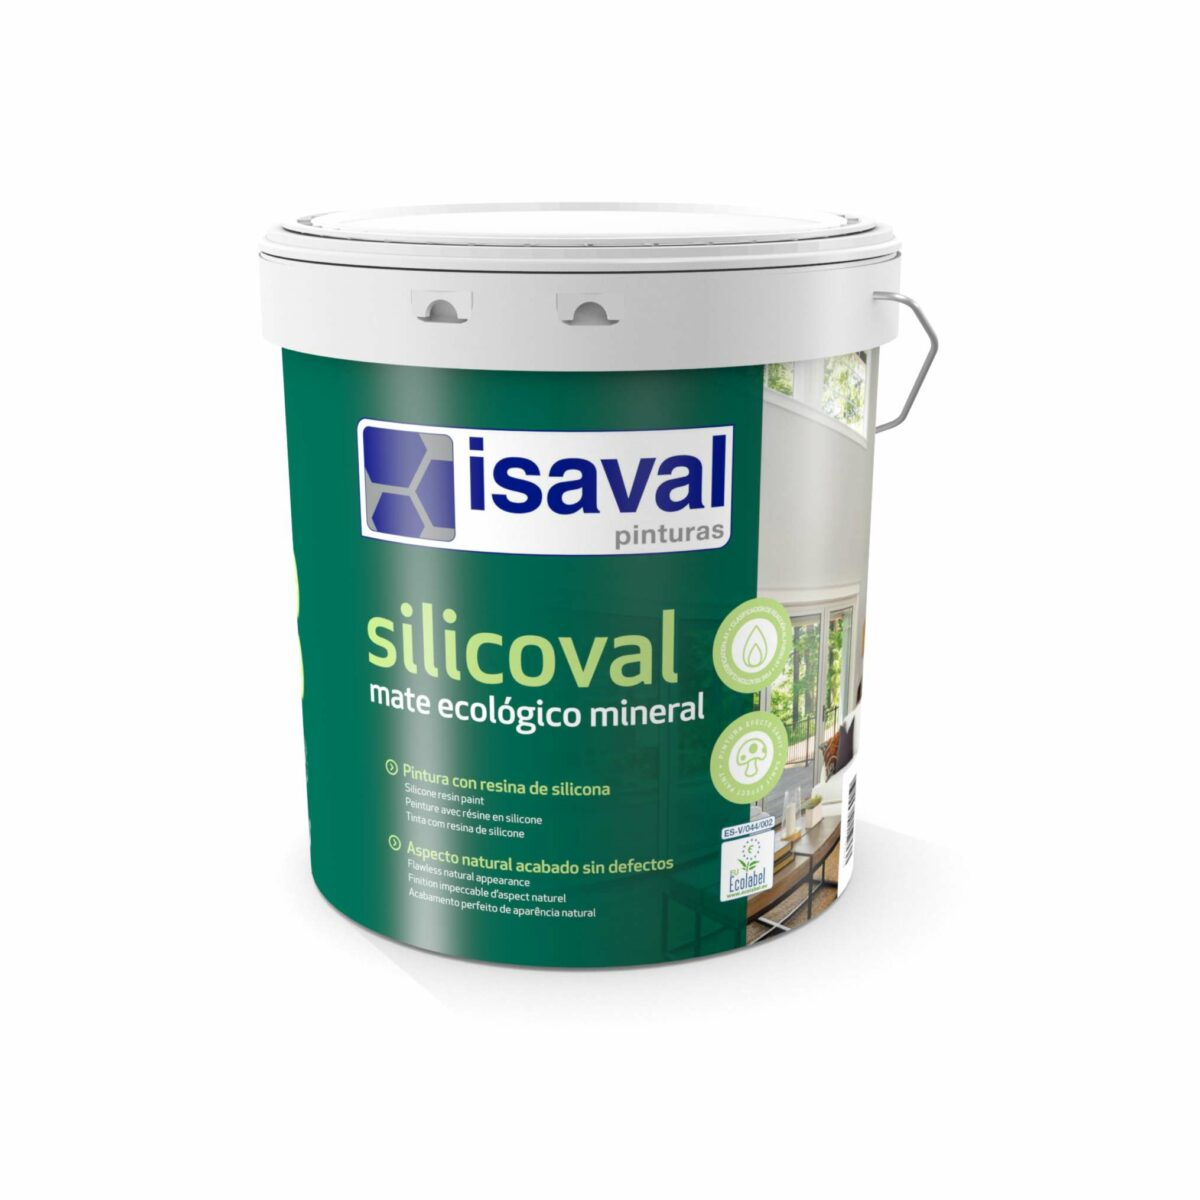 Silicoval